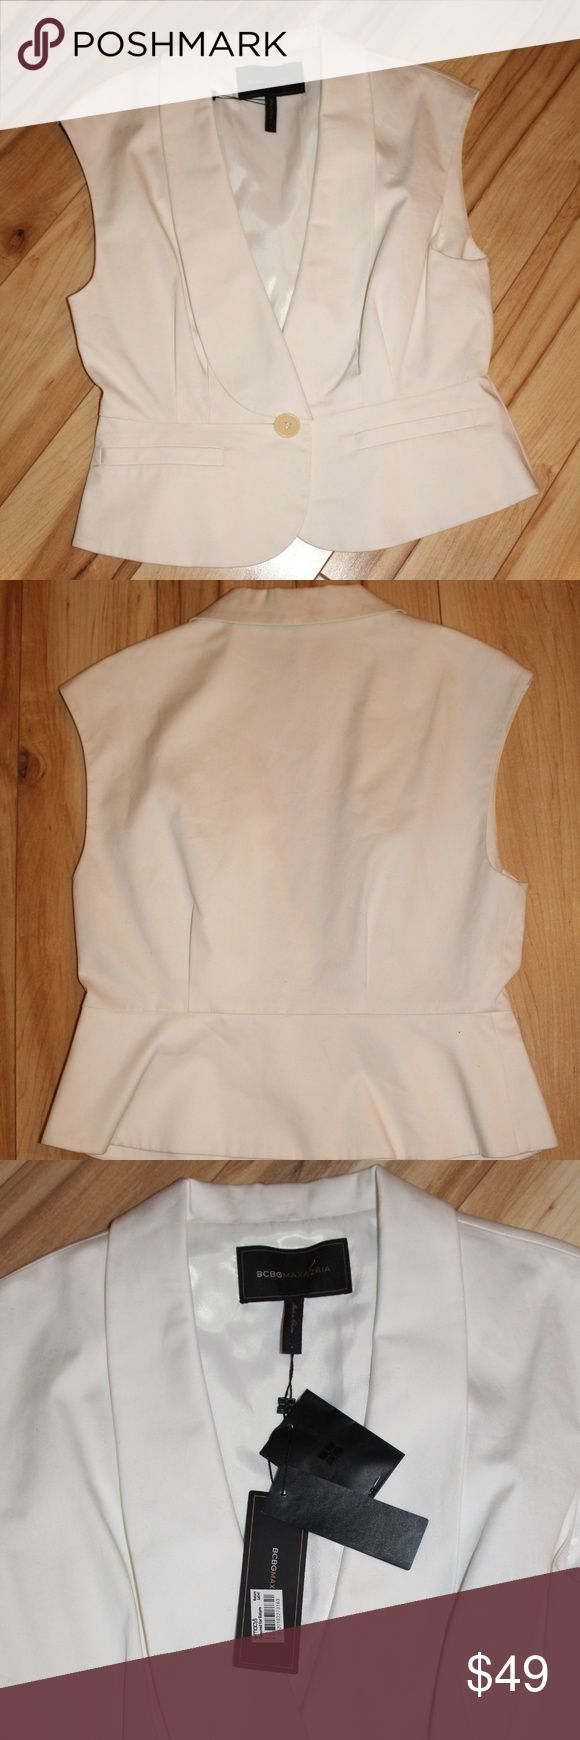 NWT! BCBGMaxAzria Tuxedo Style Vest New Chic BCBG Tuxedo Style Vest! Great w/ dress pants or even a skirt.   97% Cotton 3% Spandex   Extra Button Included  Dry Clean Only BCBGMaxAzria Jackets & Coats Vests